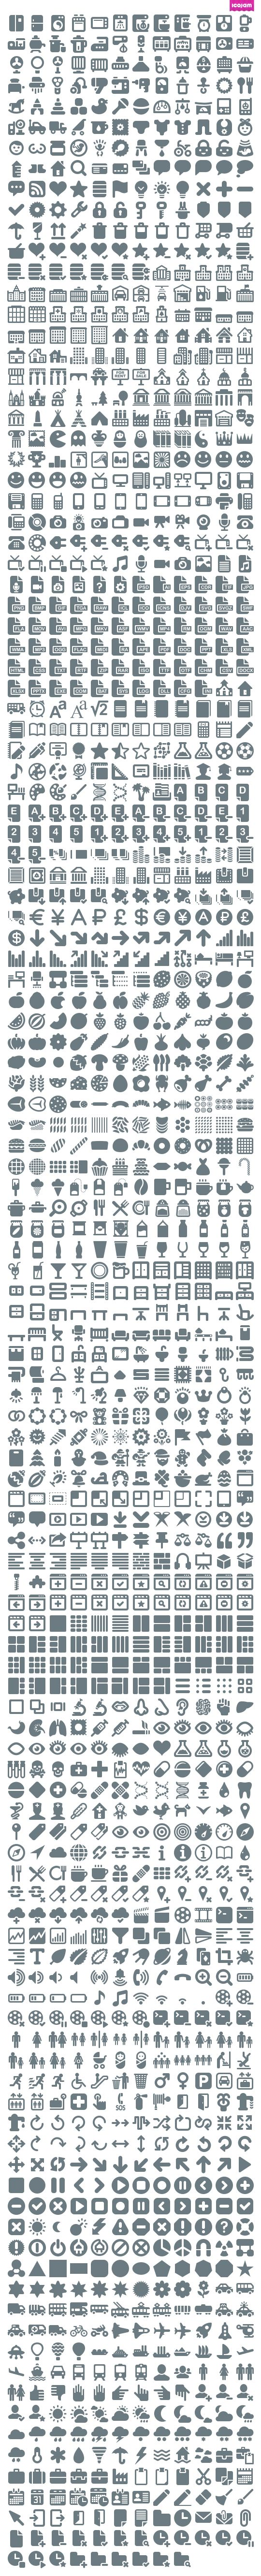 74 best Icons images on Pinterest | Icon set, Icons and Icon design